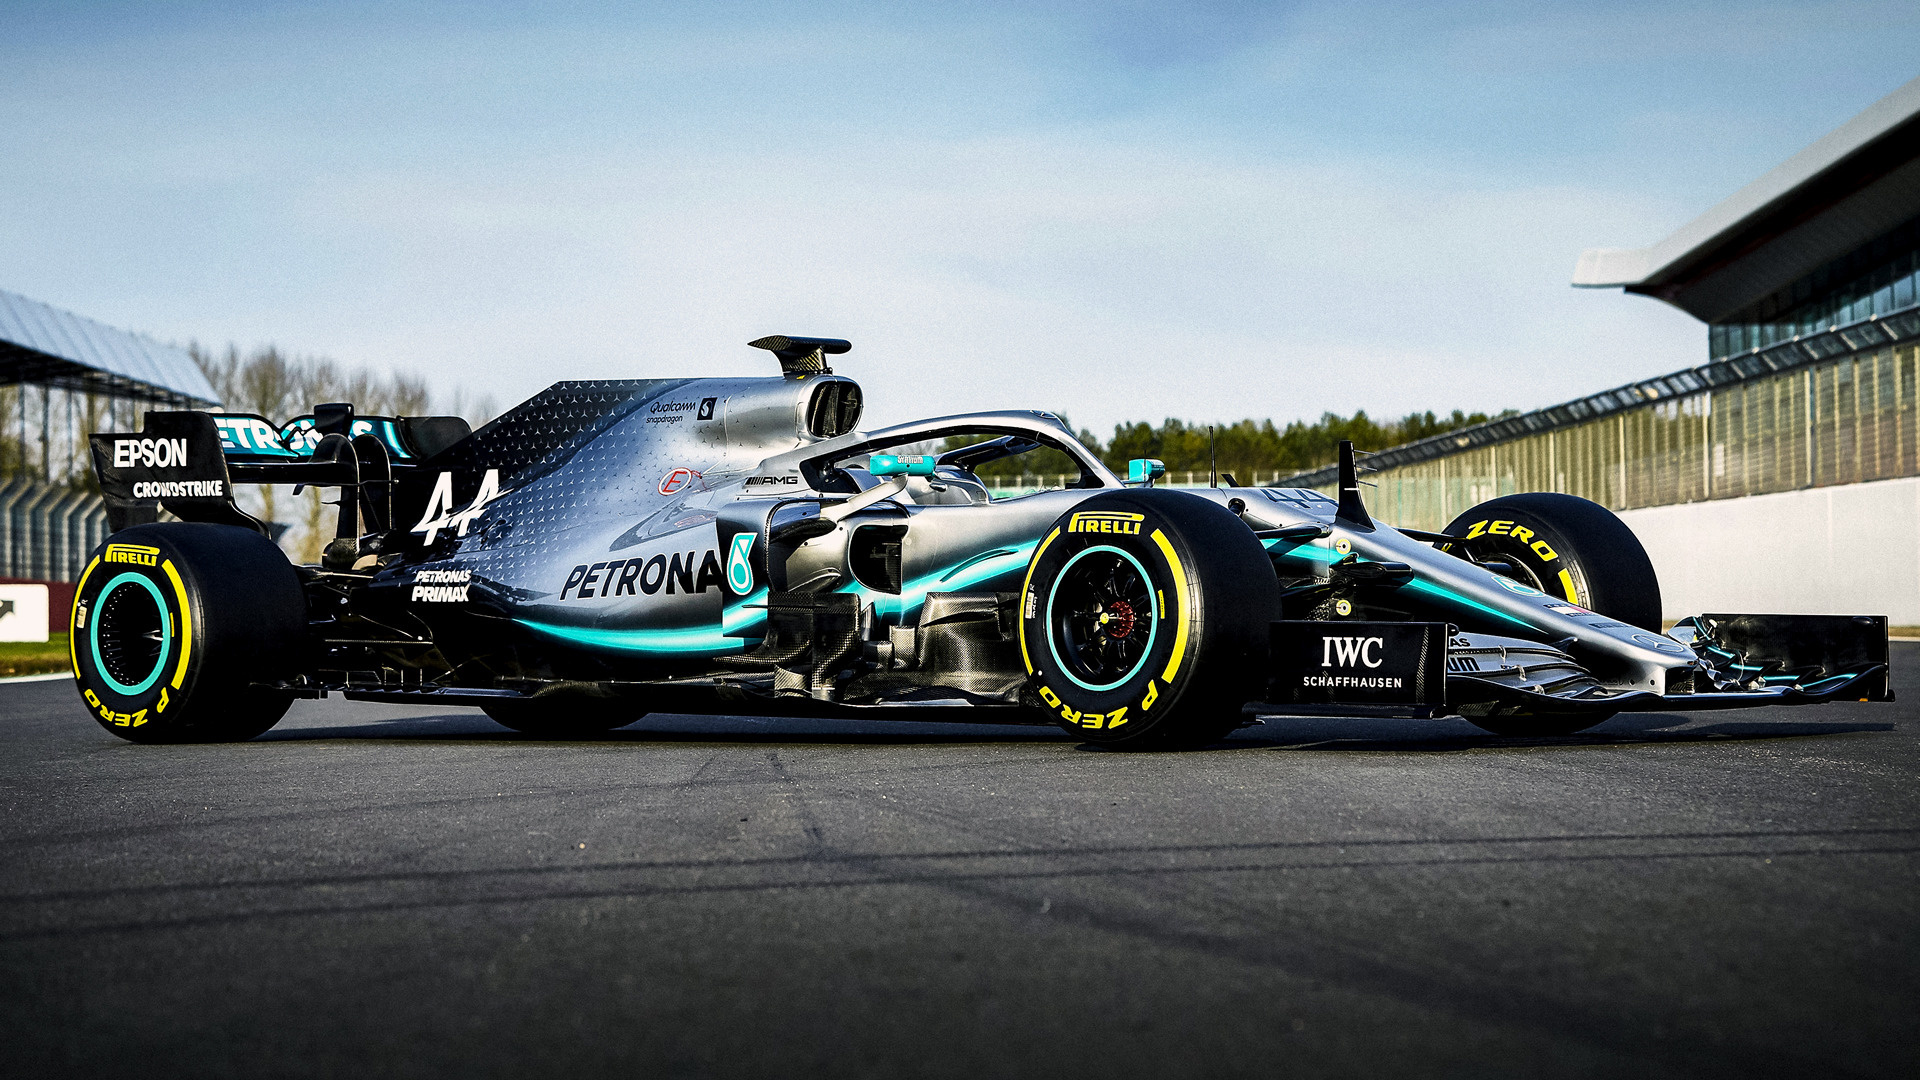 2019 Mercedes Amg F1 W10 Eq Power Wallpapers And Hd